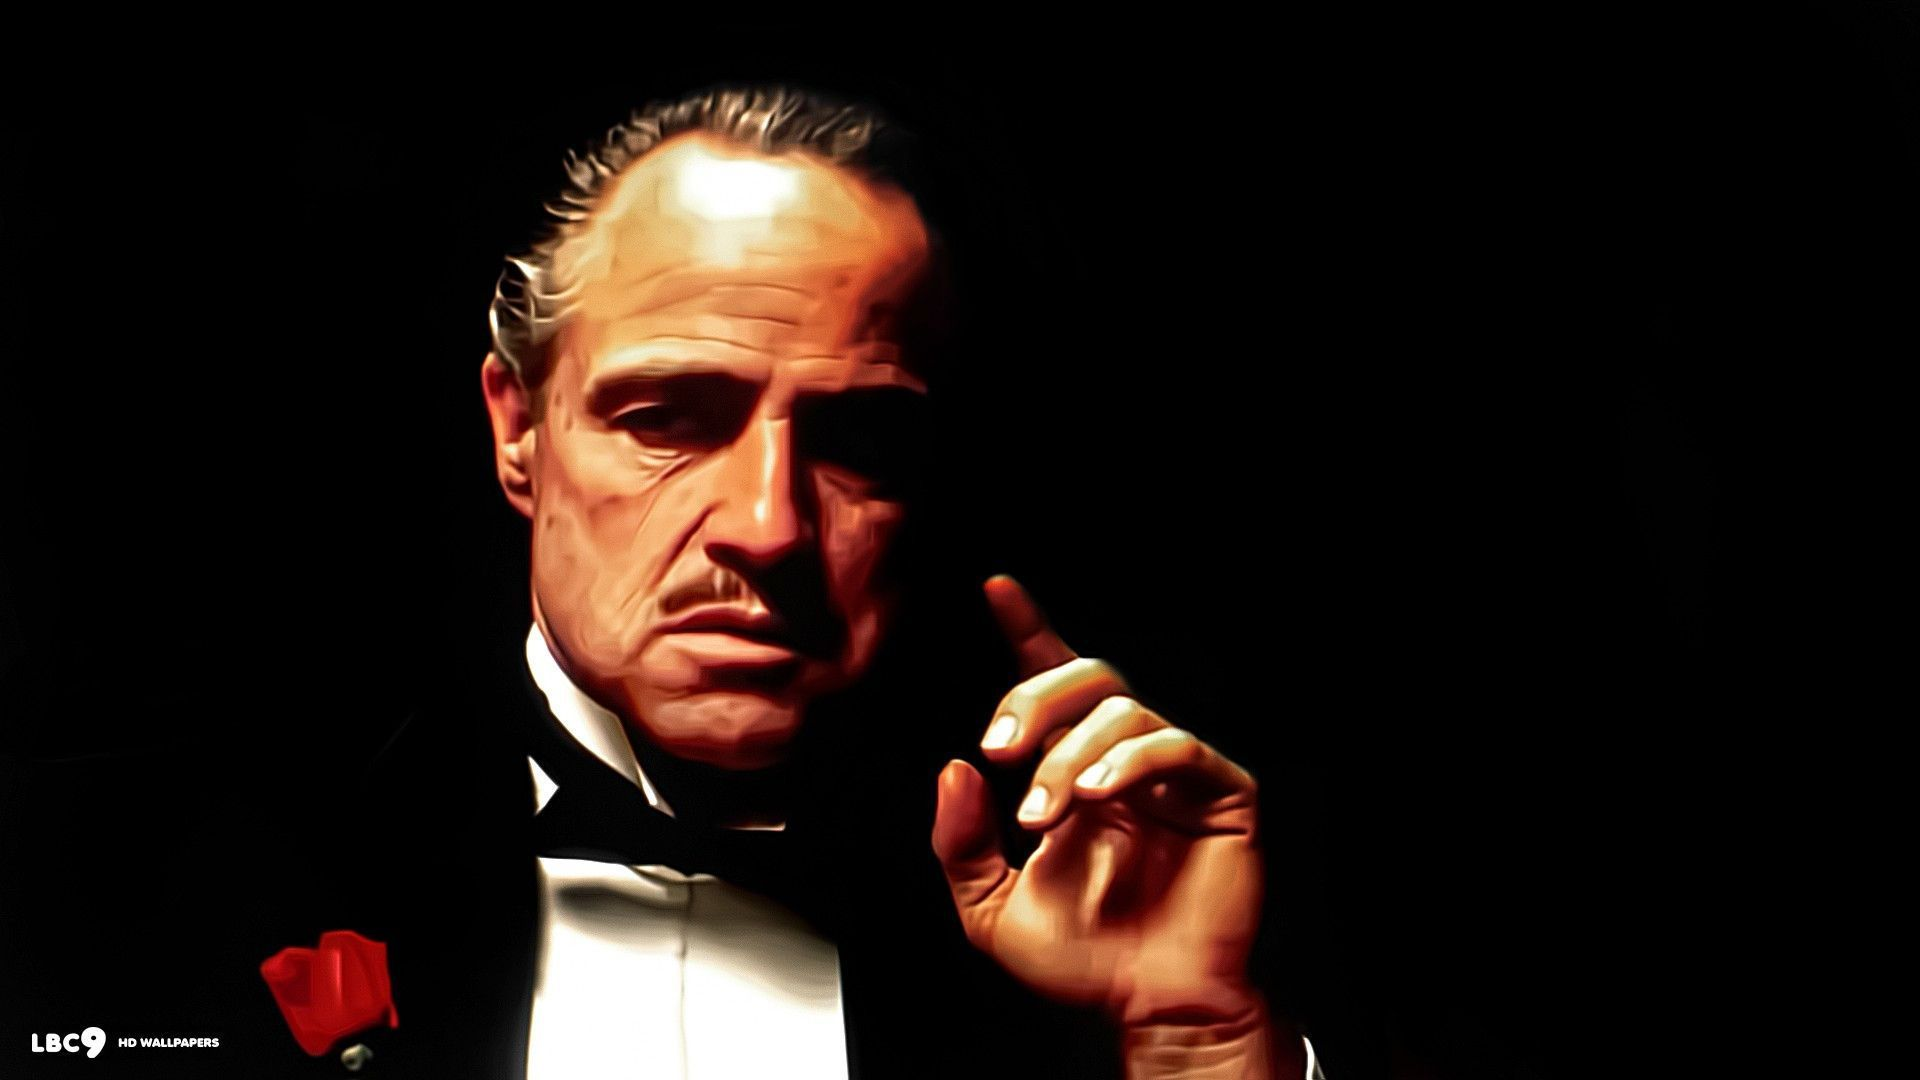 The Godfather Wallpapers High Quality Download Free In 2019